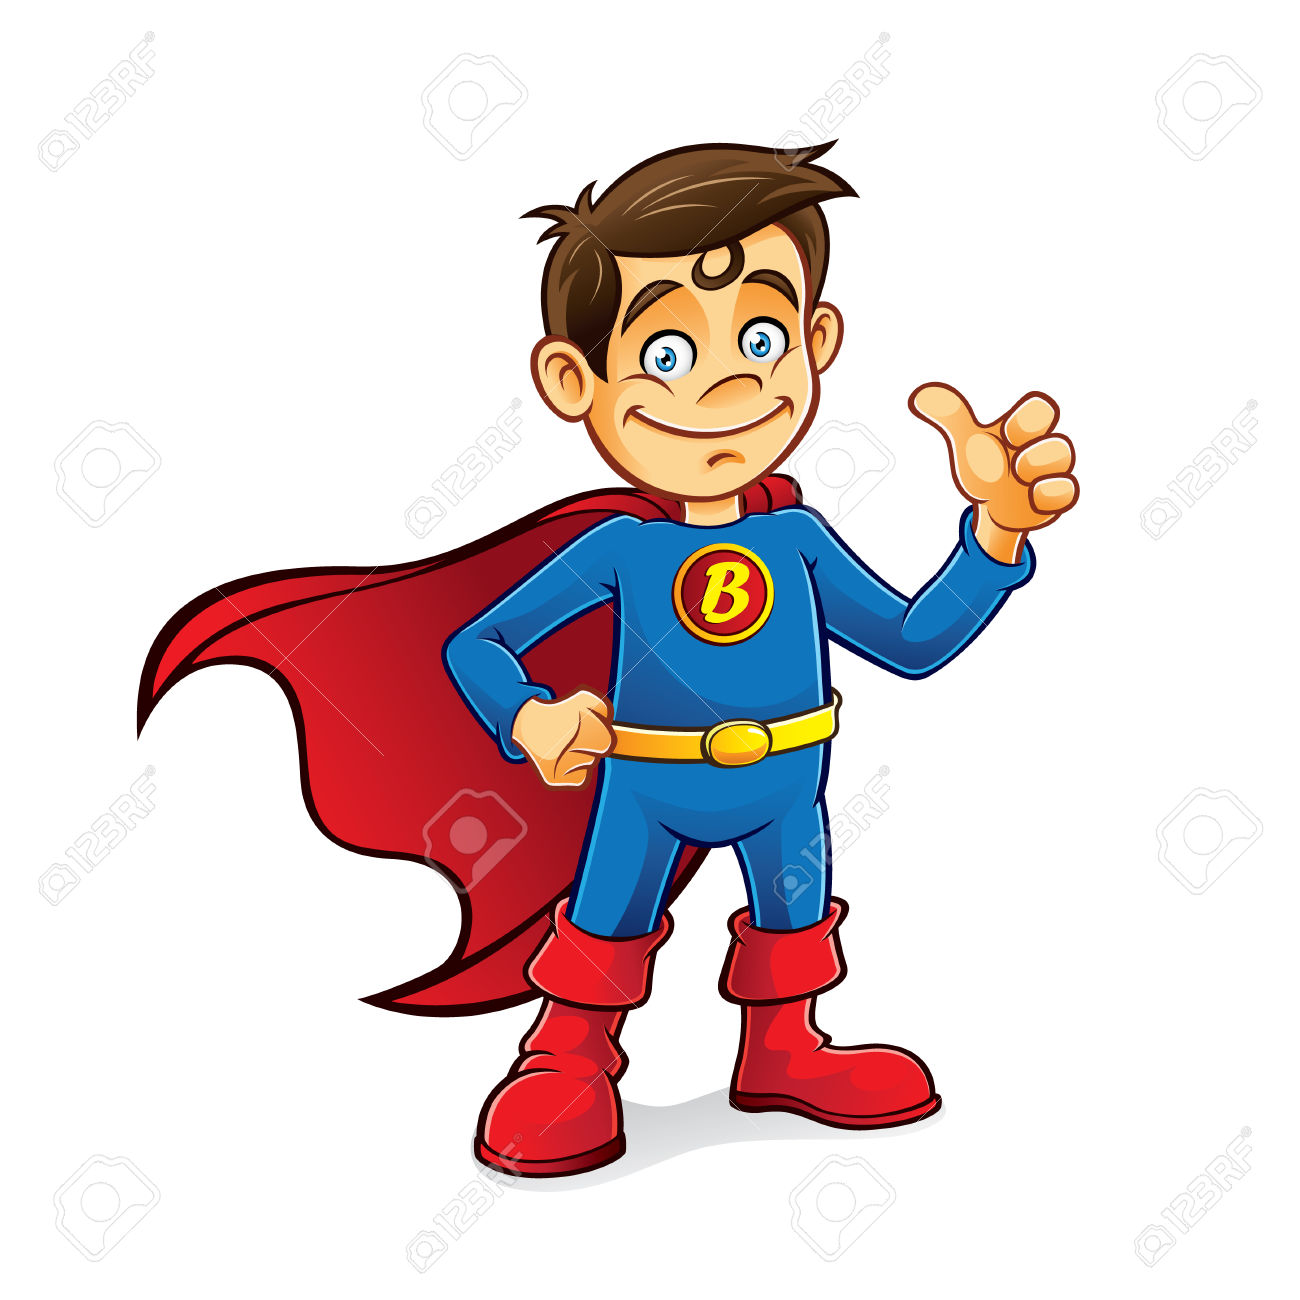 Superhero thumbs up clipart banner download Superhero thumbs up clipart - ClipartFest banner download